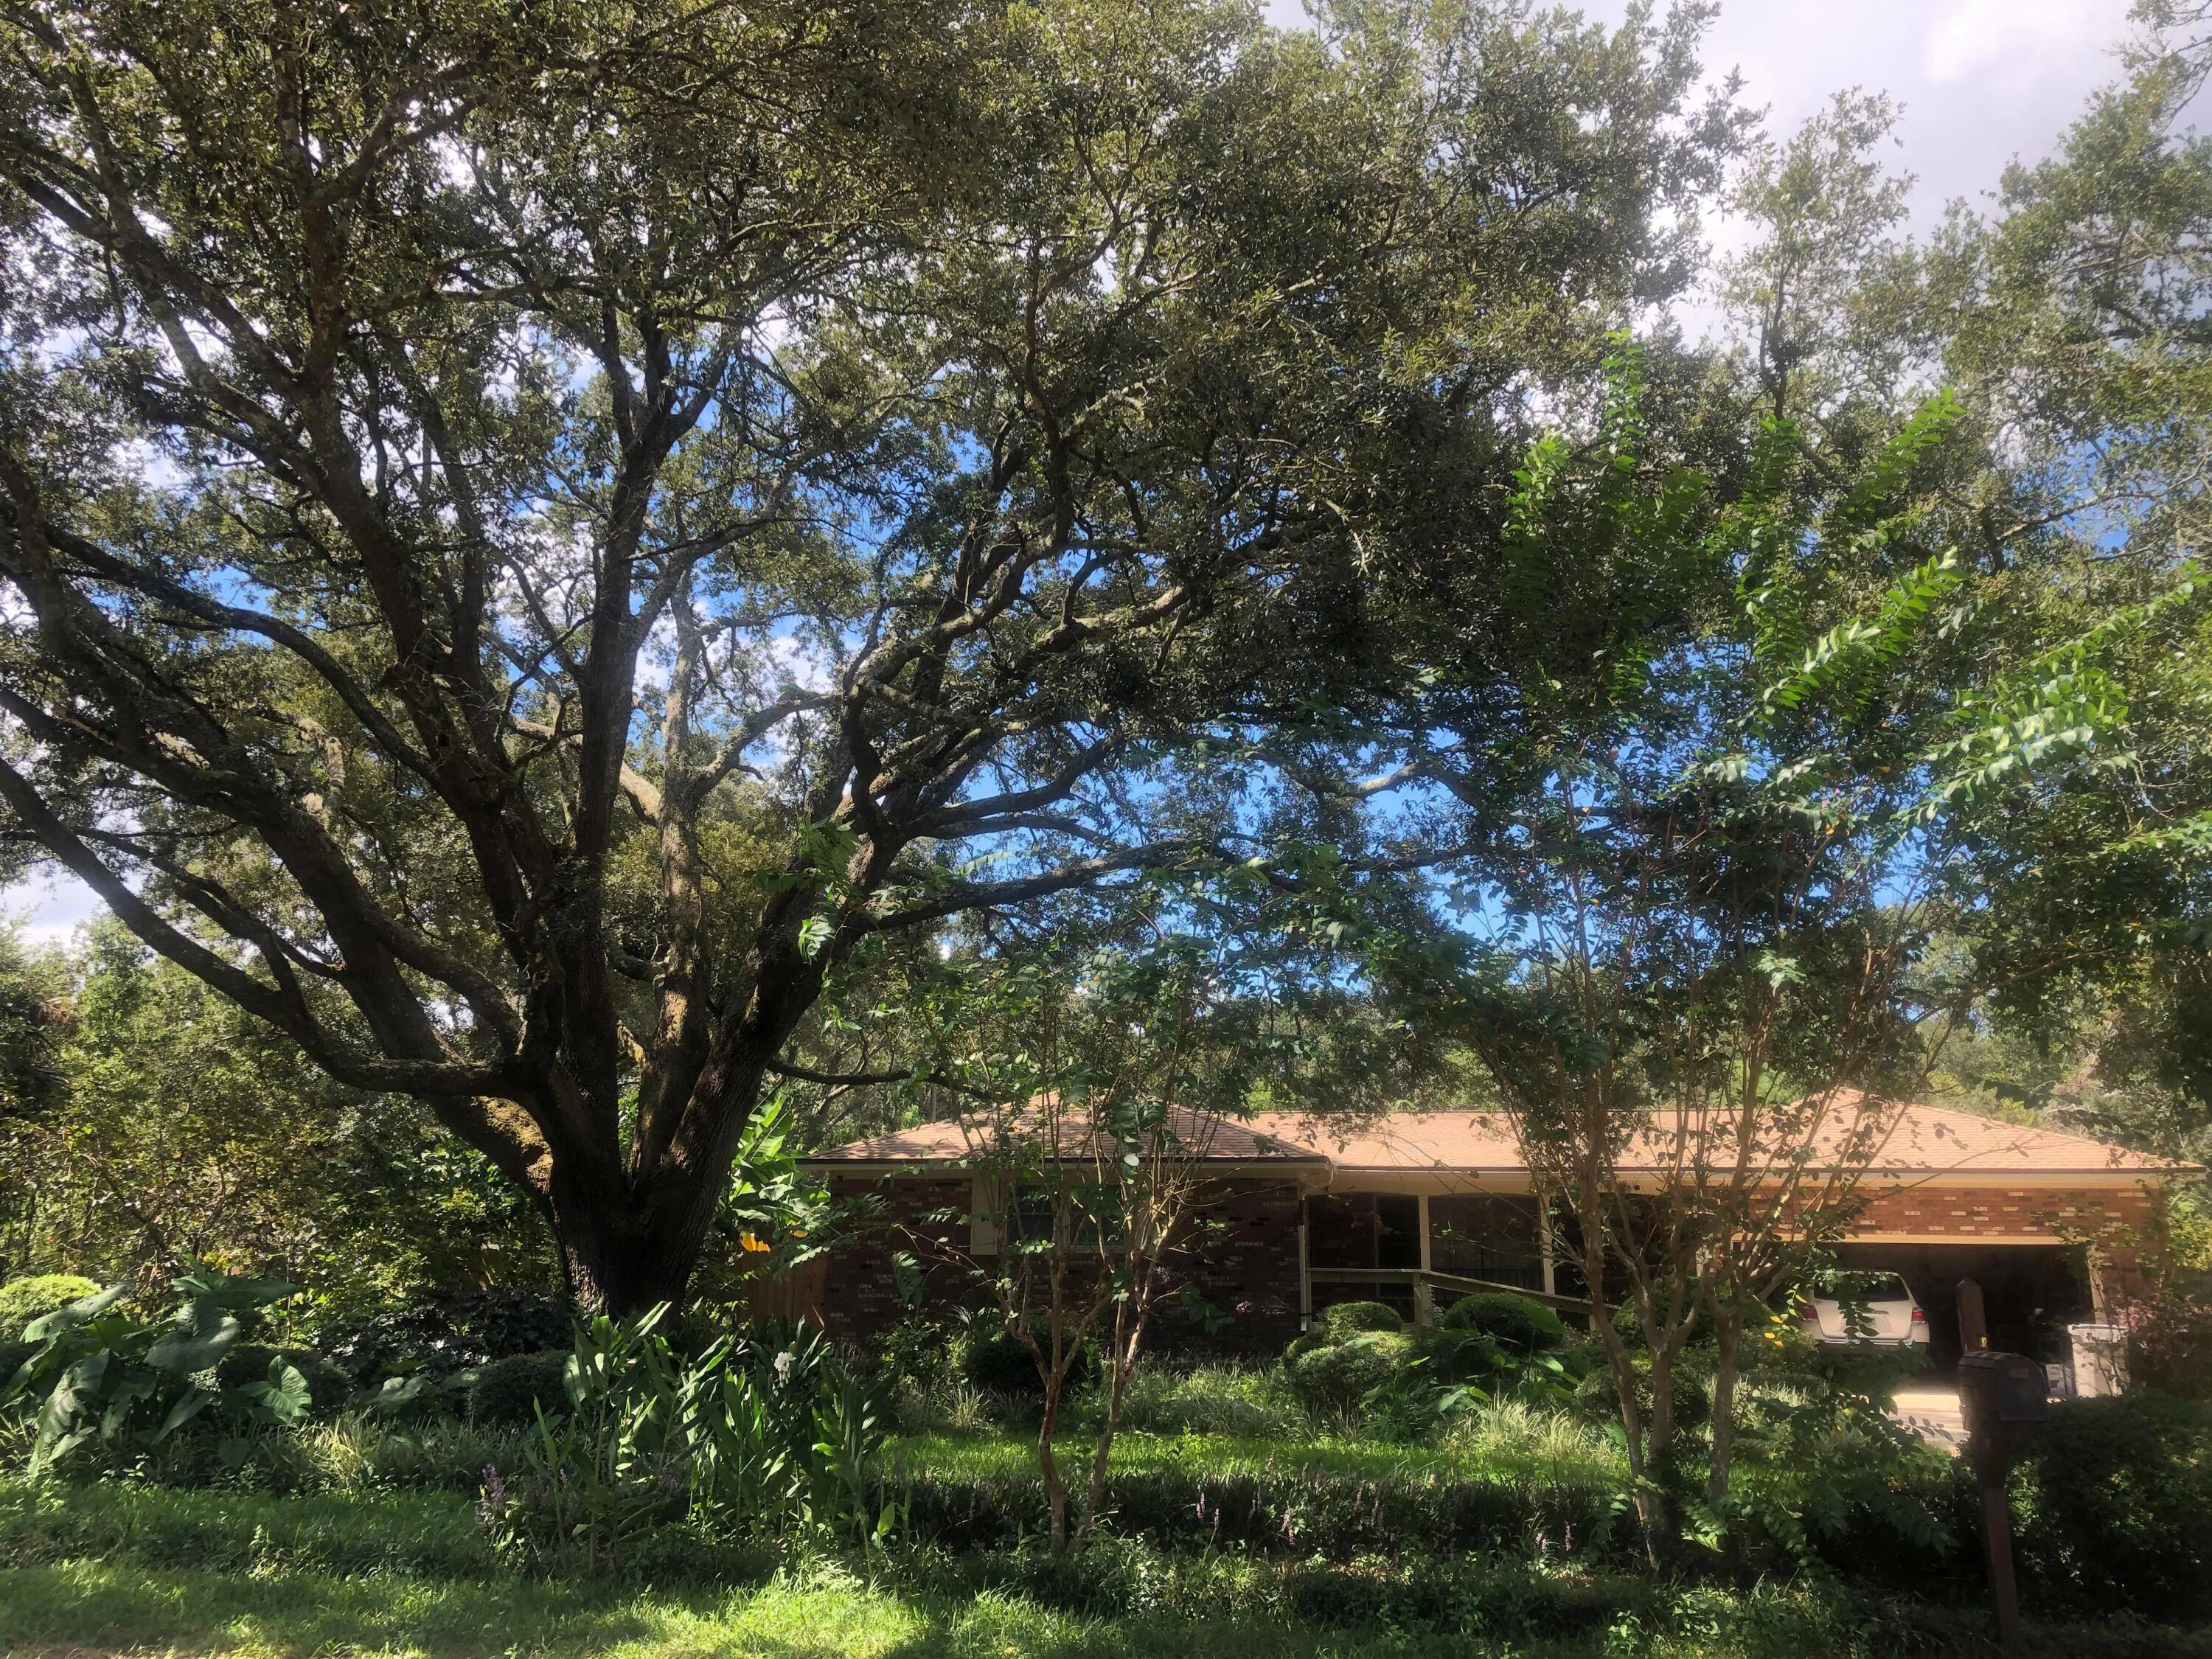 Located within Myrtle Grove within walking distance to Osceola Municipal Golf Course, this charming